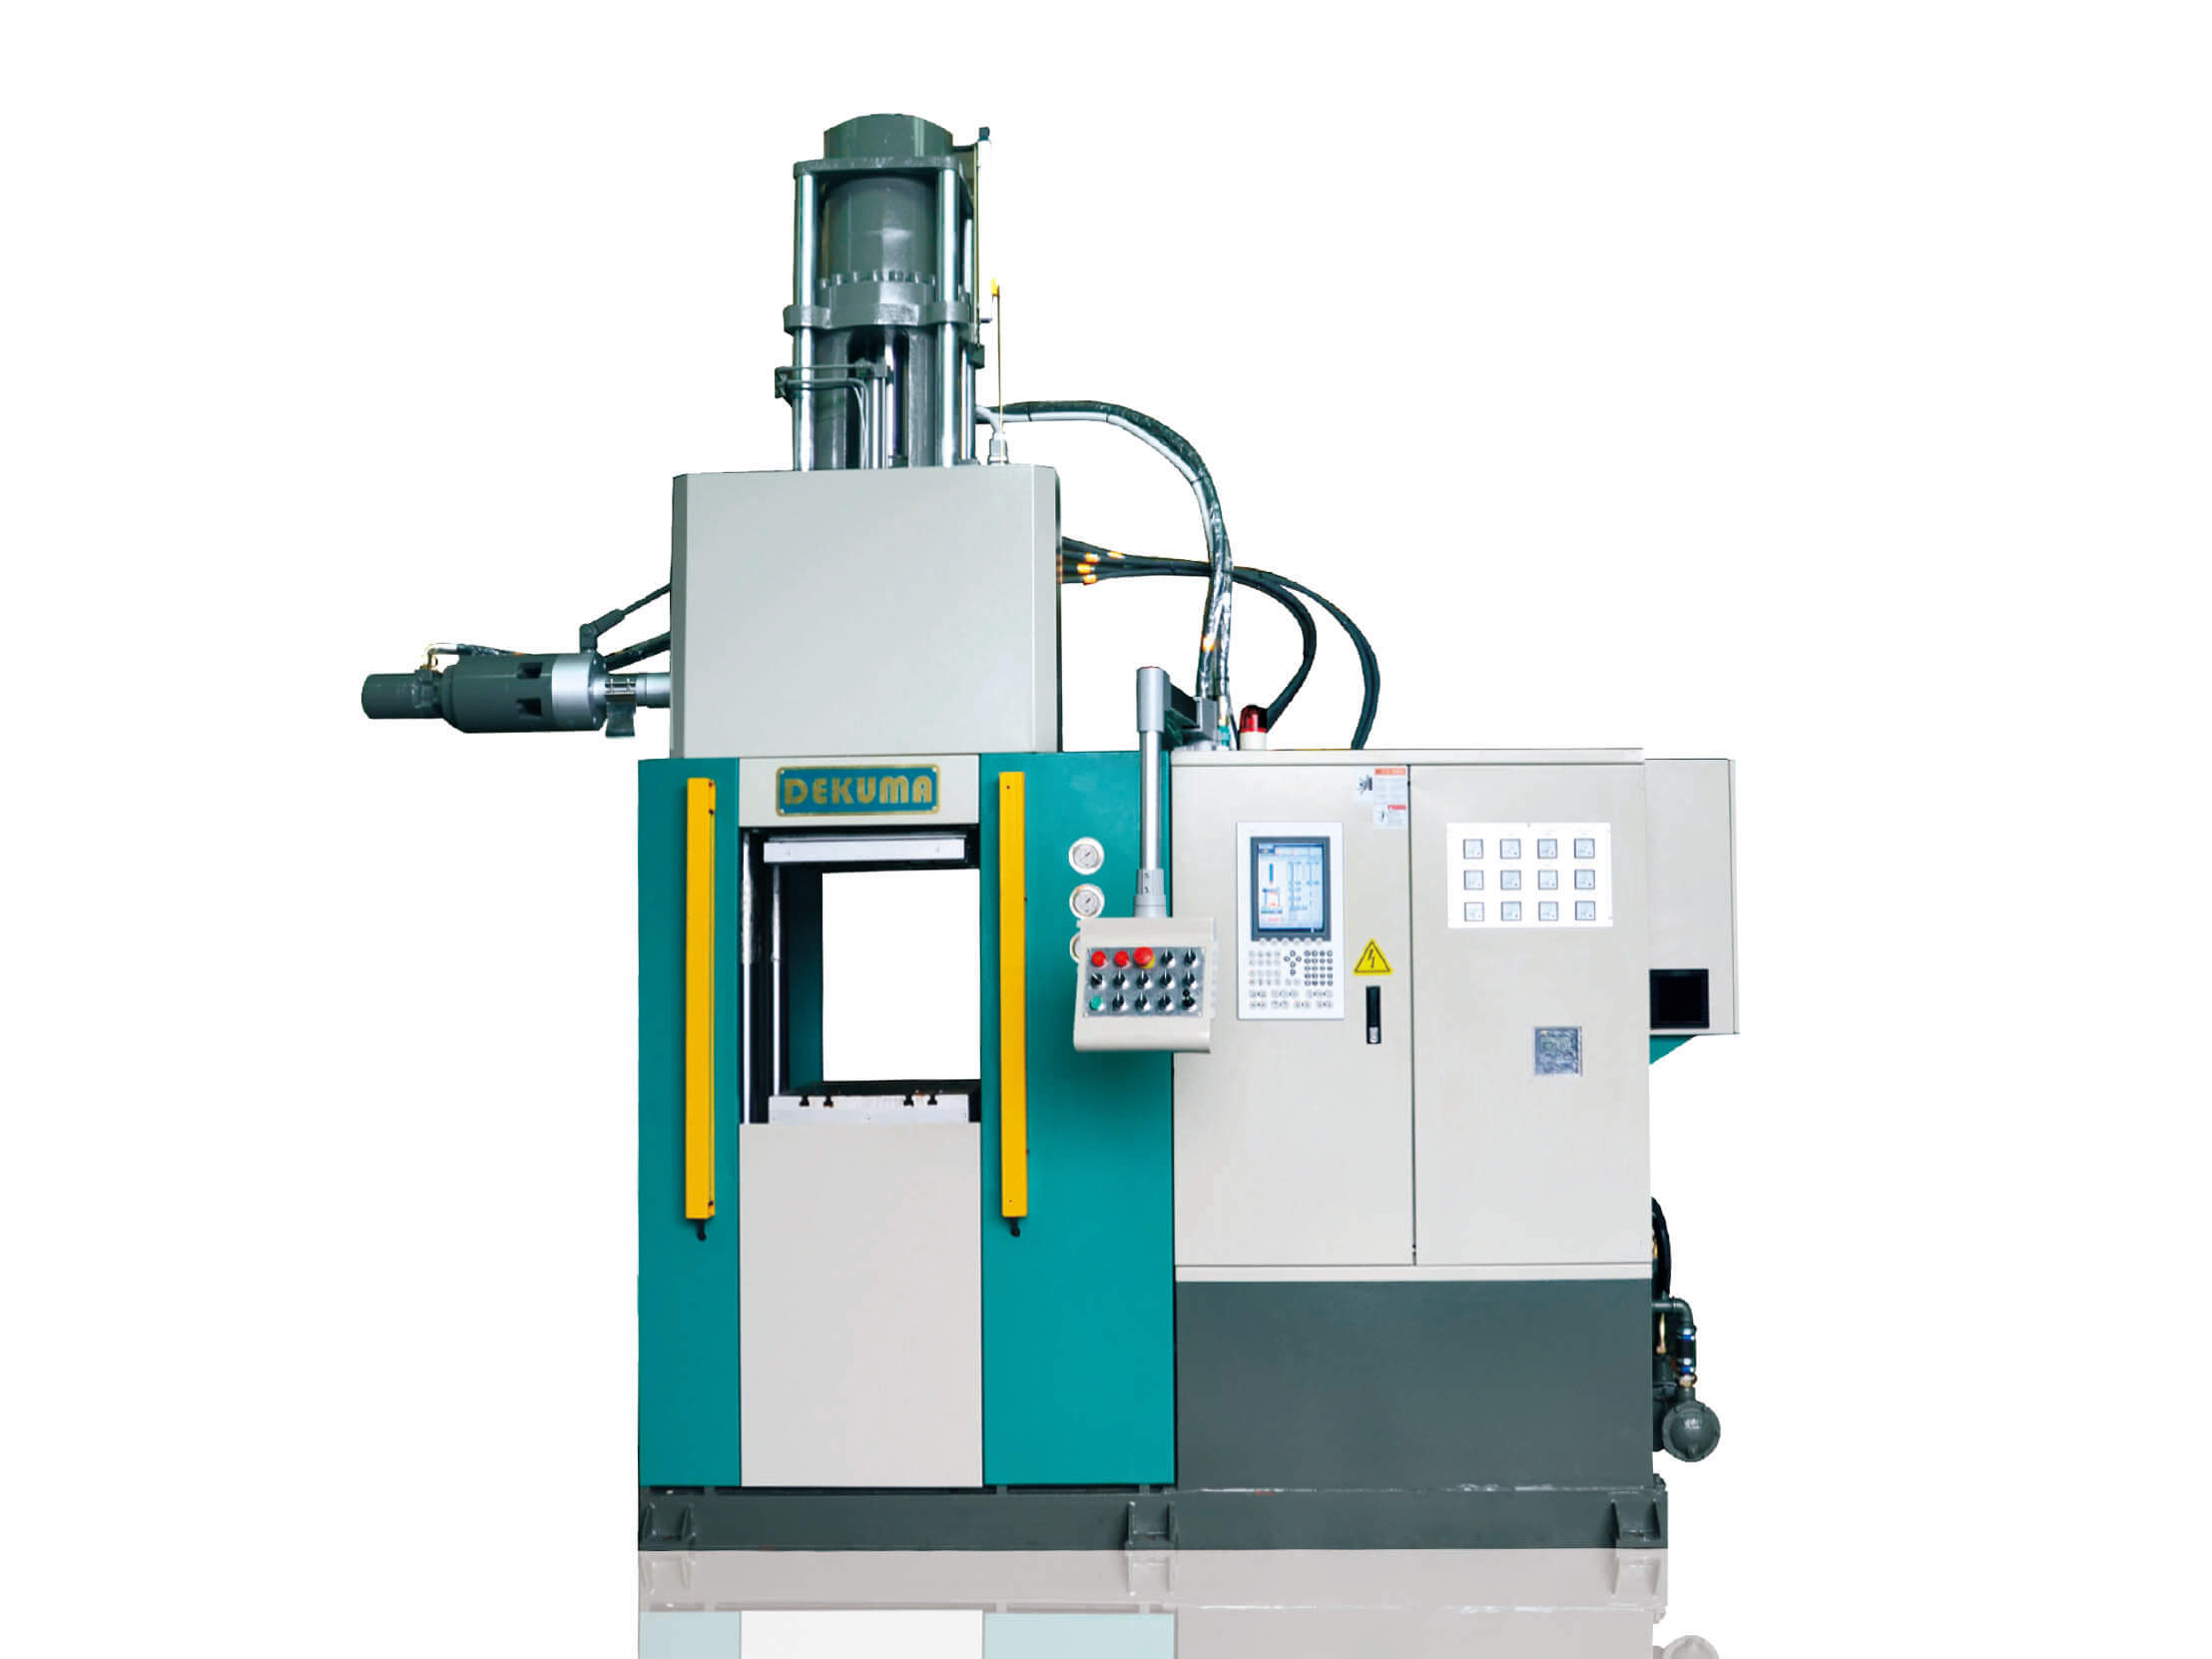 Global Silicone Injection Molding Machine Market 2020 Sales Revenue  Analysis, Major Manufacturers Performance, Industry Share and Forecast 2025  – The Courier